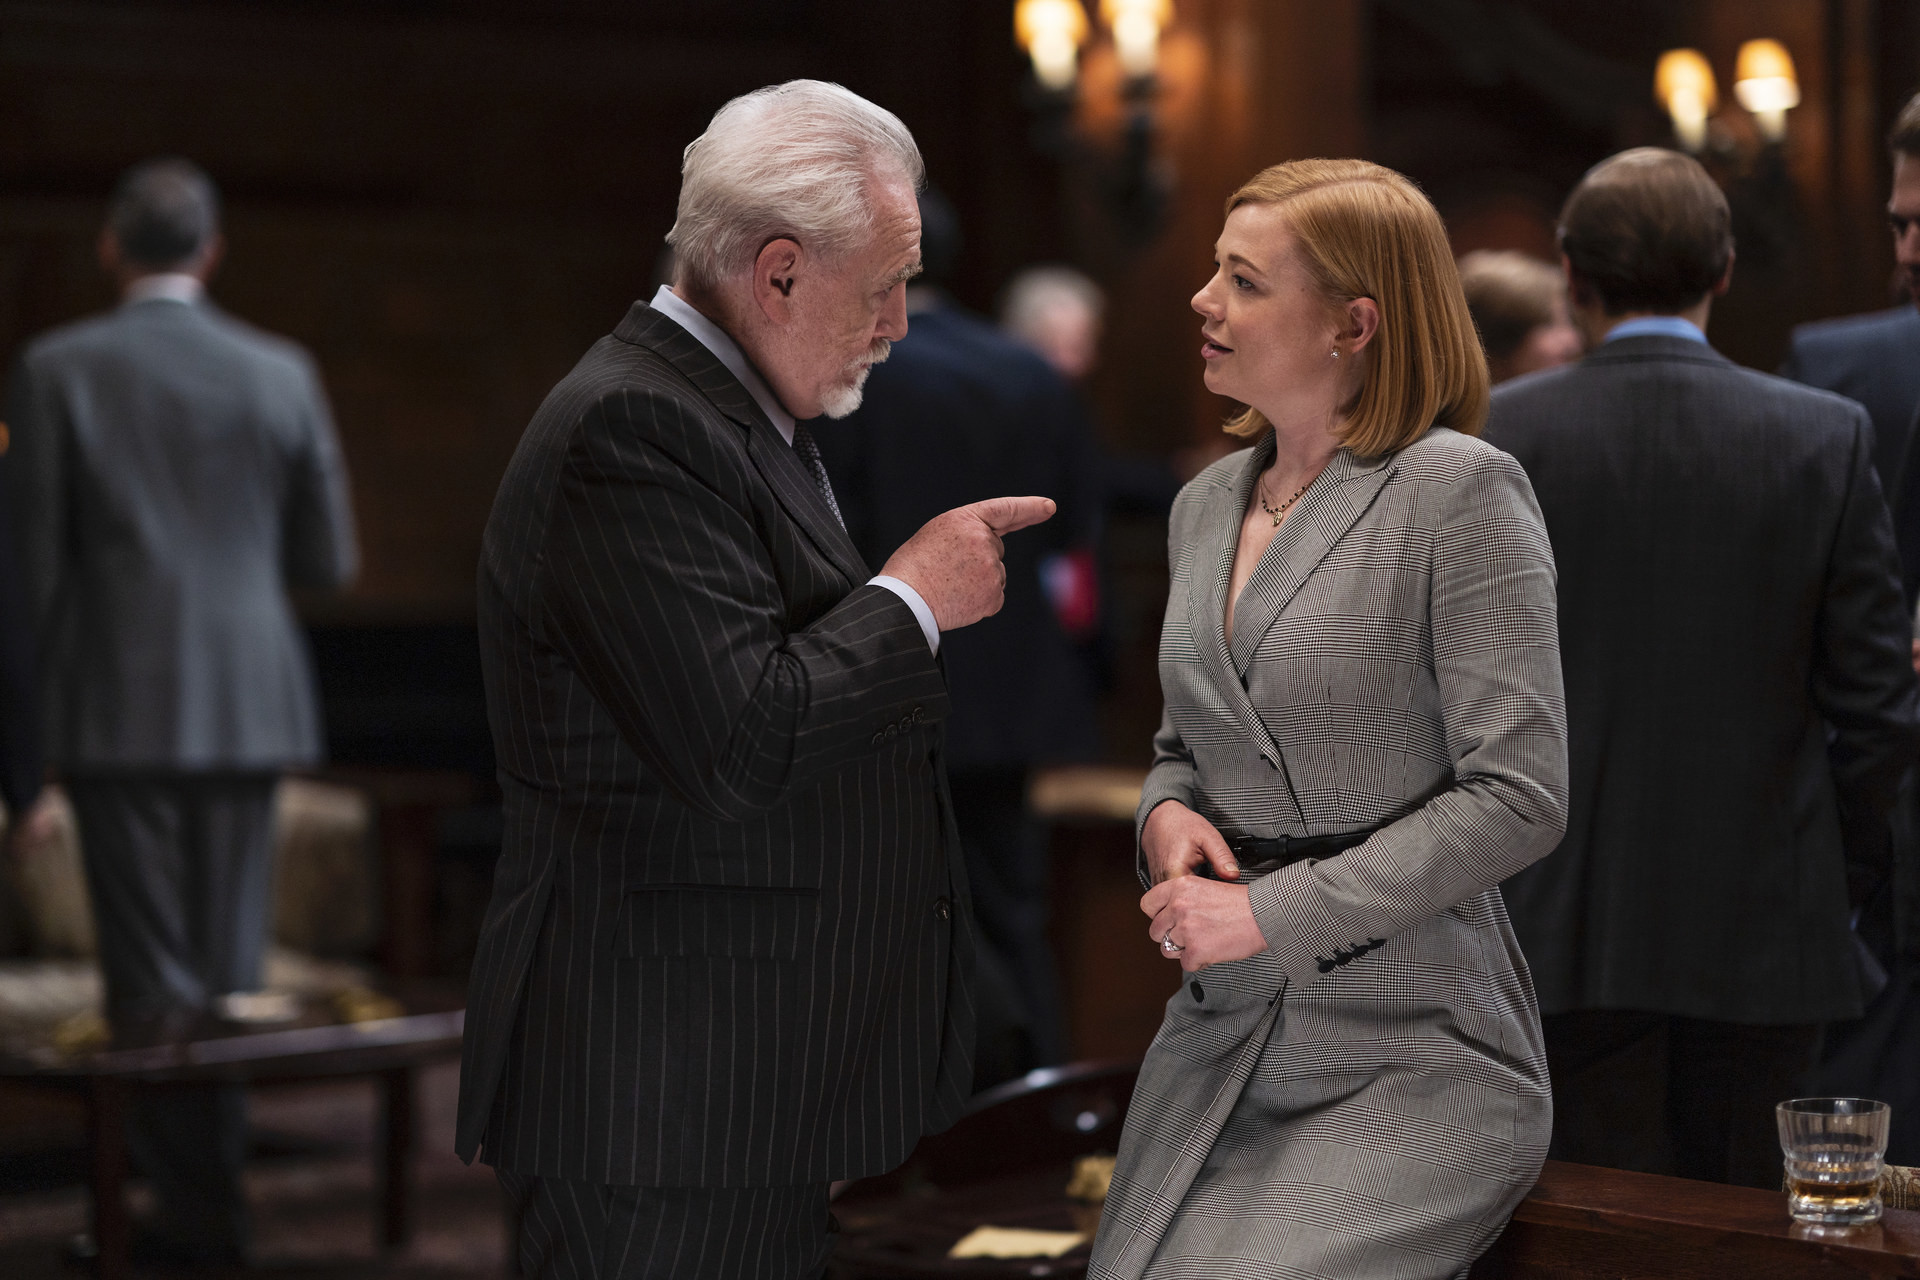 Brian Cox speaks to Sarah Snook at a business function